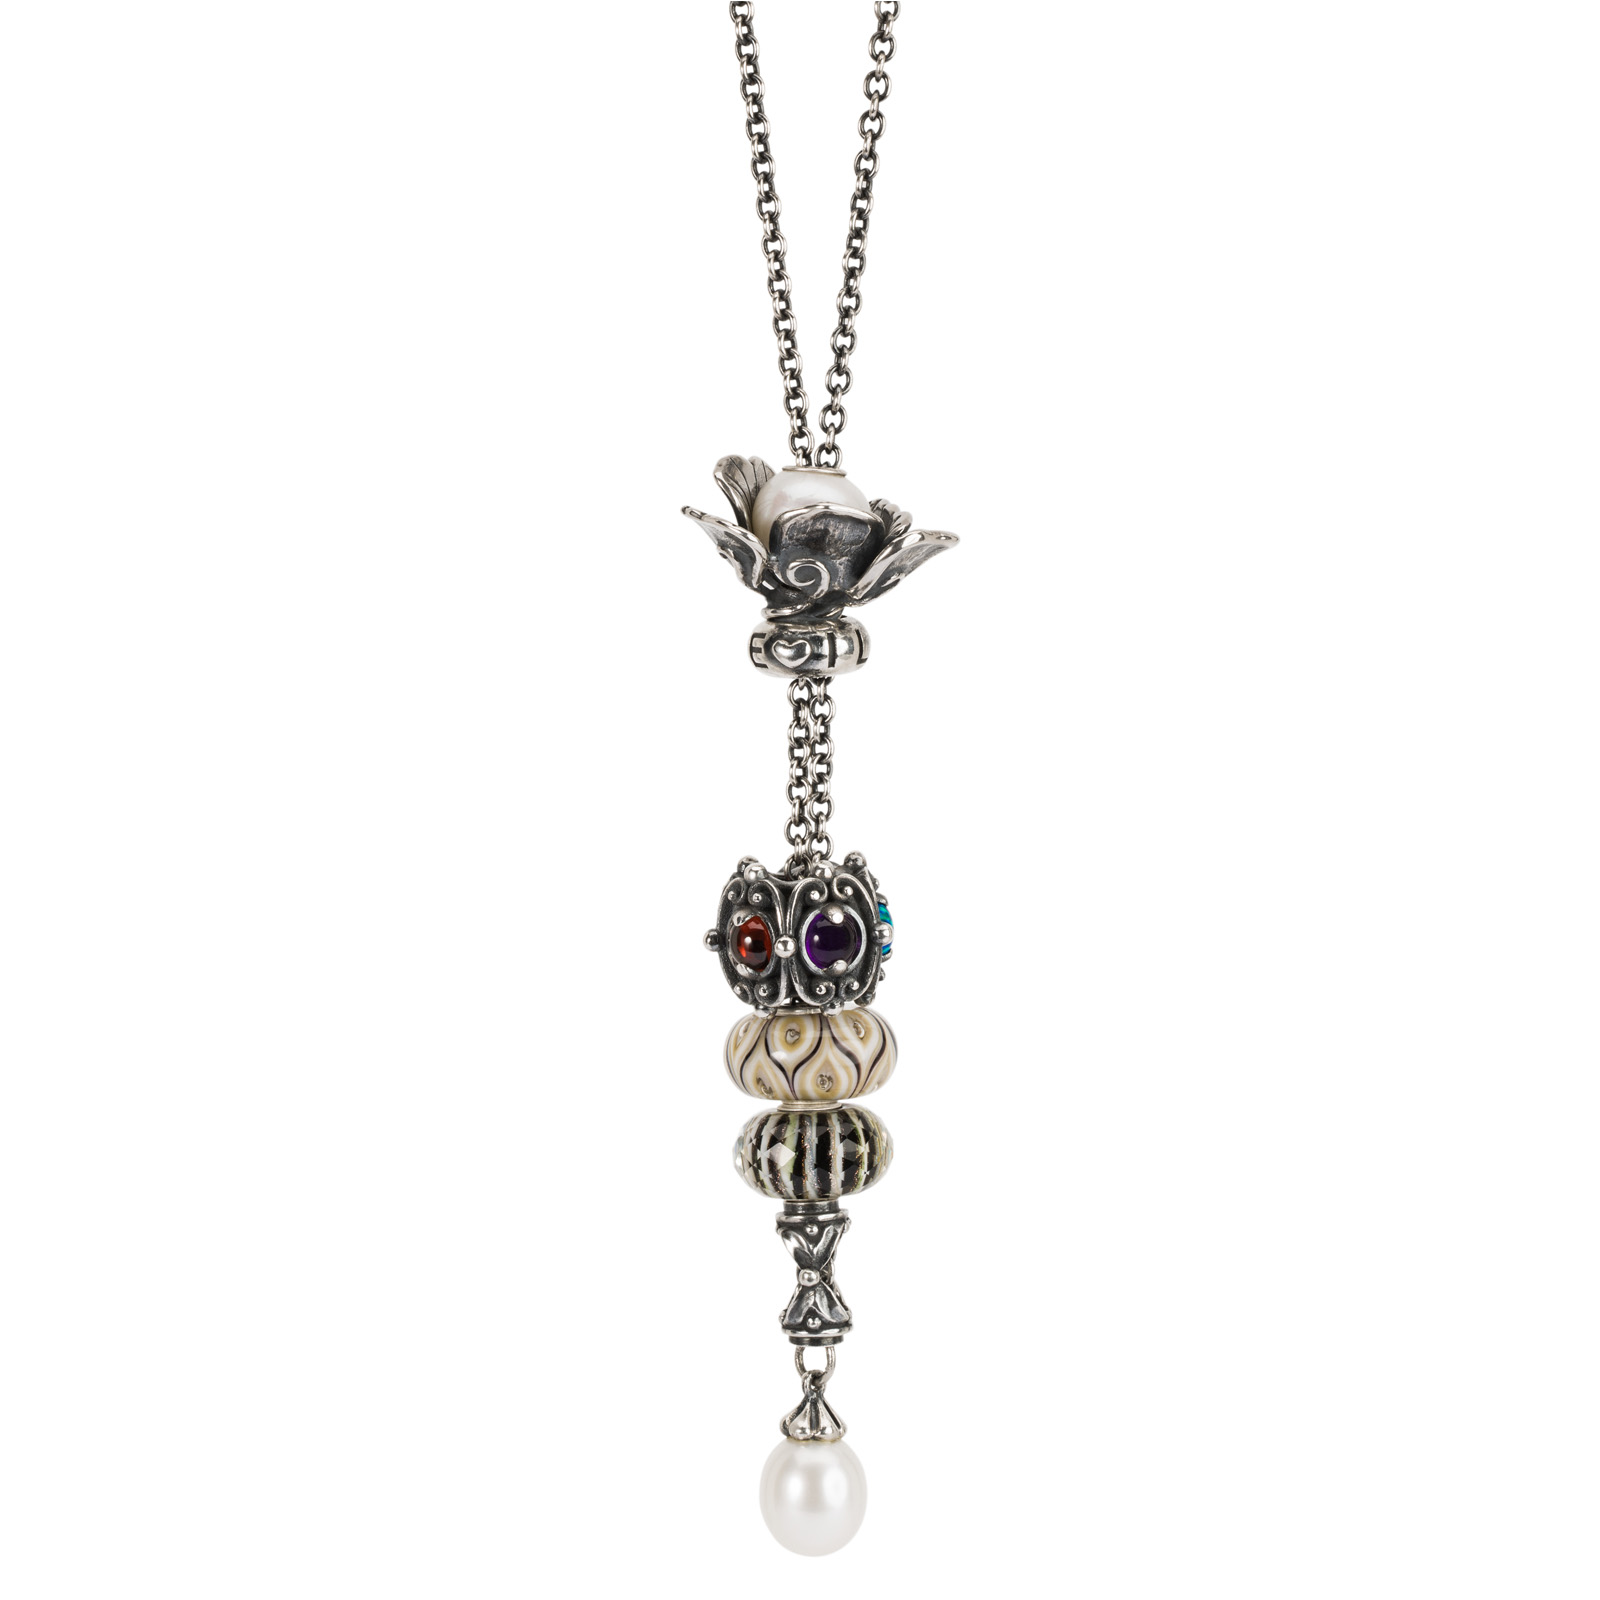 Trollbeads - New Wisdom Fantasy Necklace